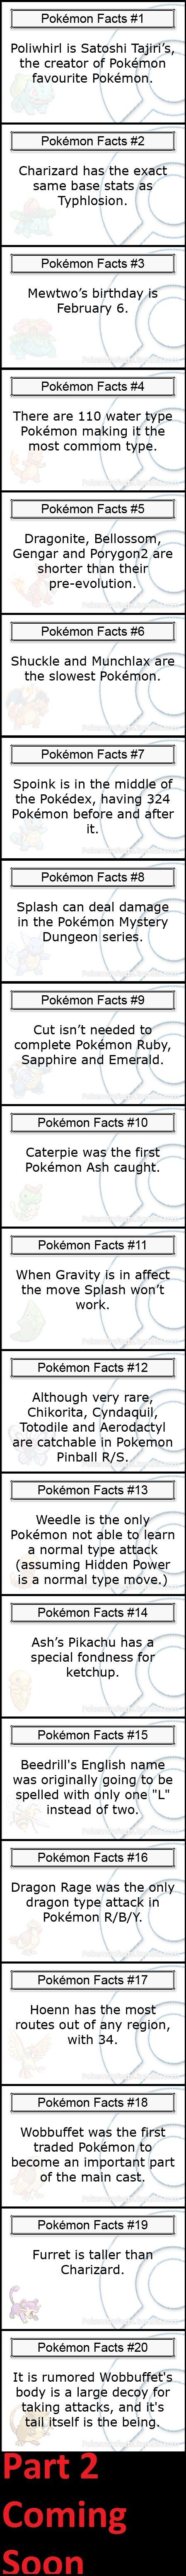 Pokemon facts. Found & compiled Part 2 coming soon. Pokeamon Facts #1 Poliwhirl is Satoshi ' s, the creator of Pokeamon favourite Pokeamon. Pokeamon Facts #